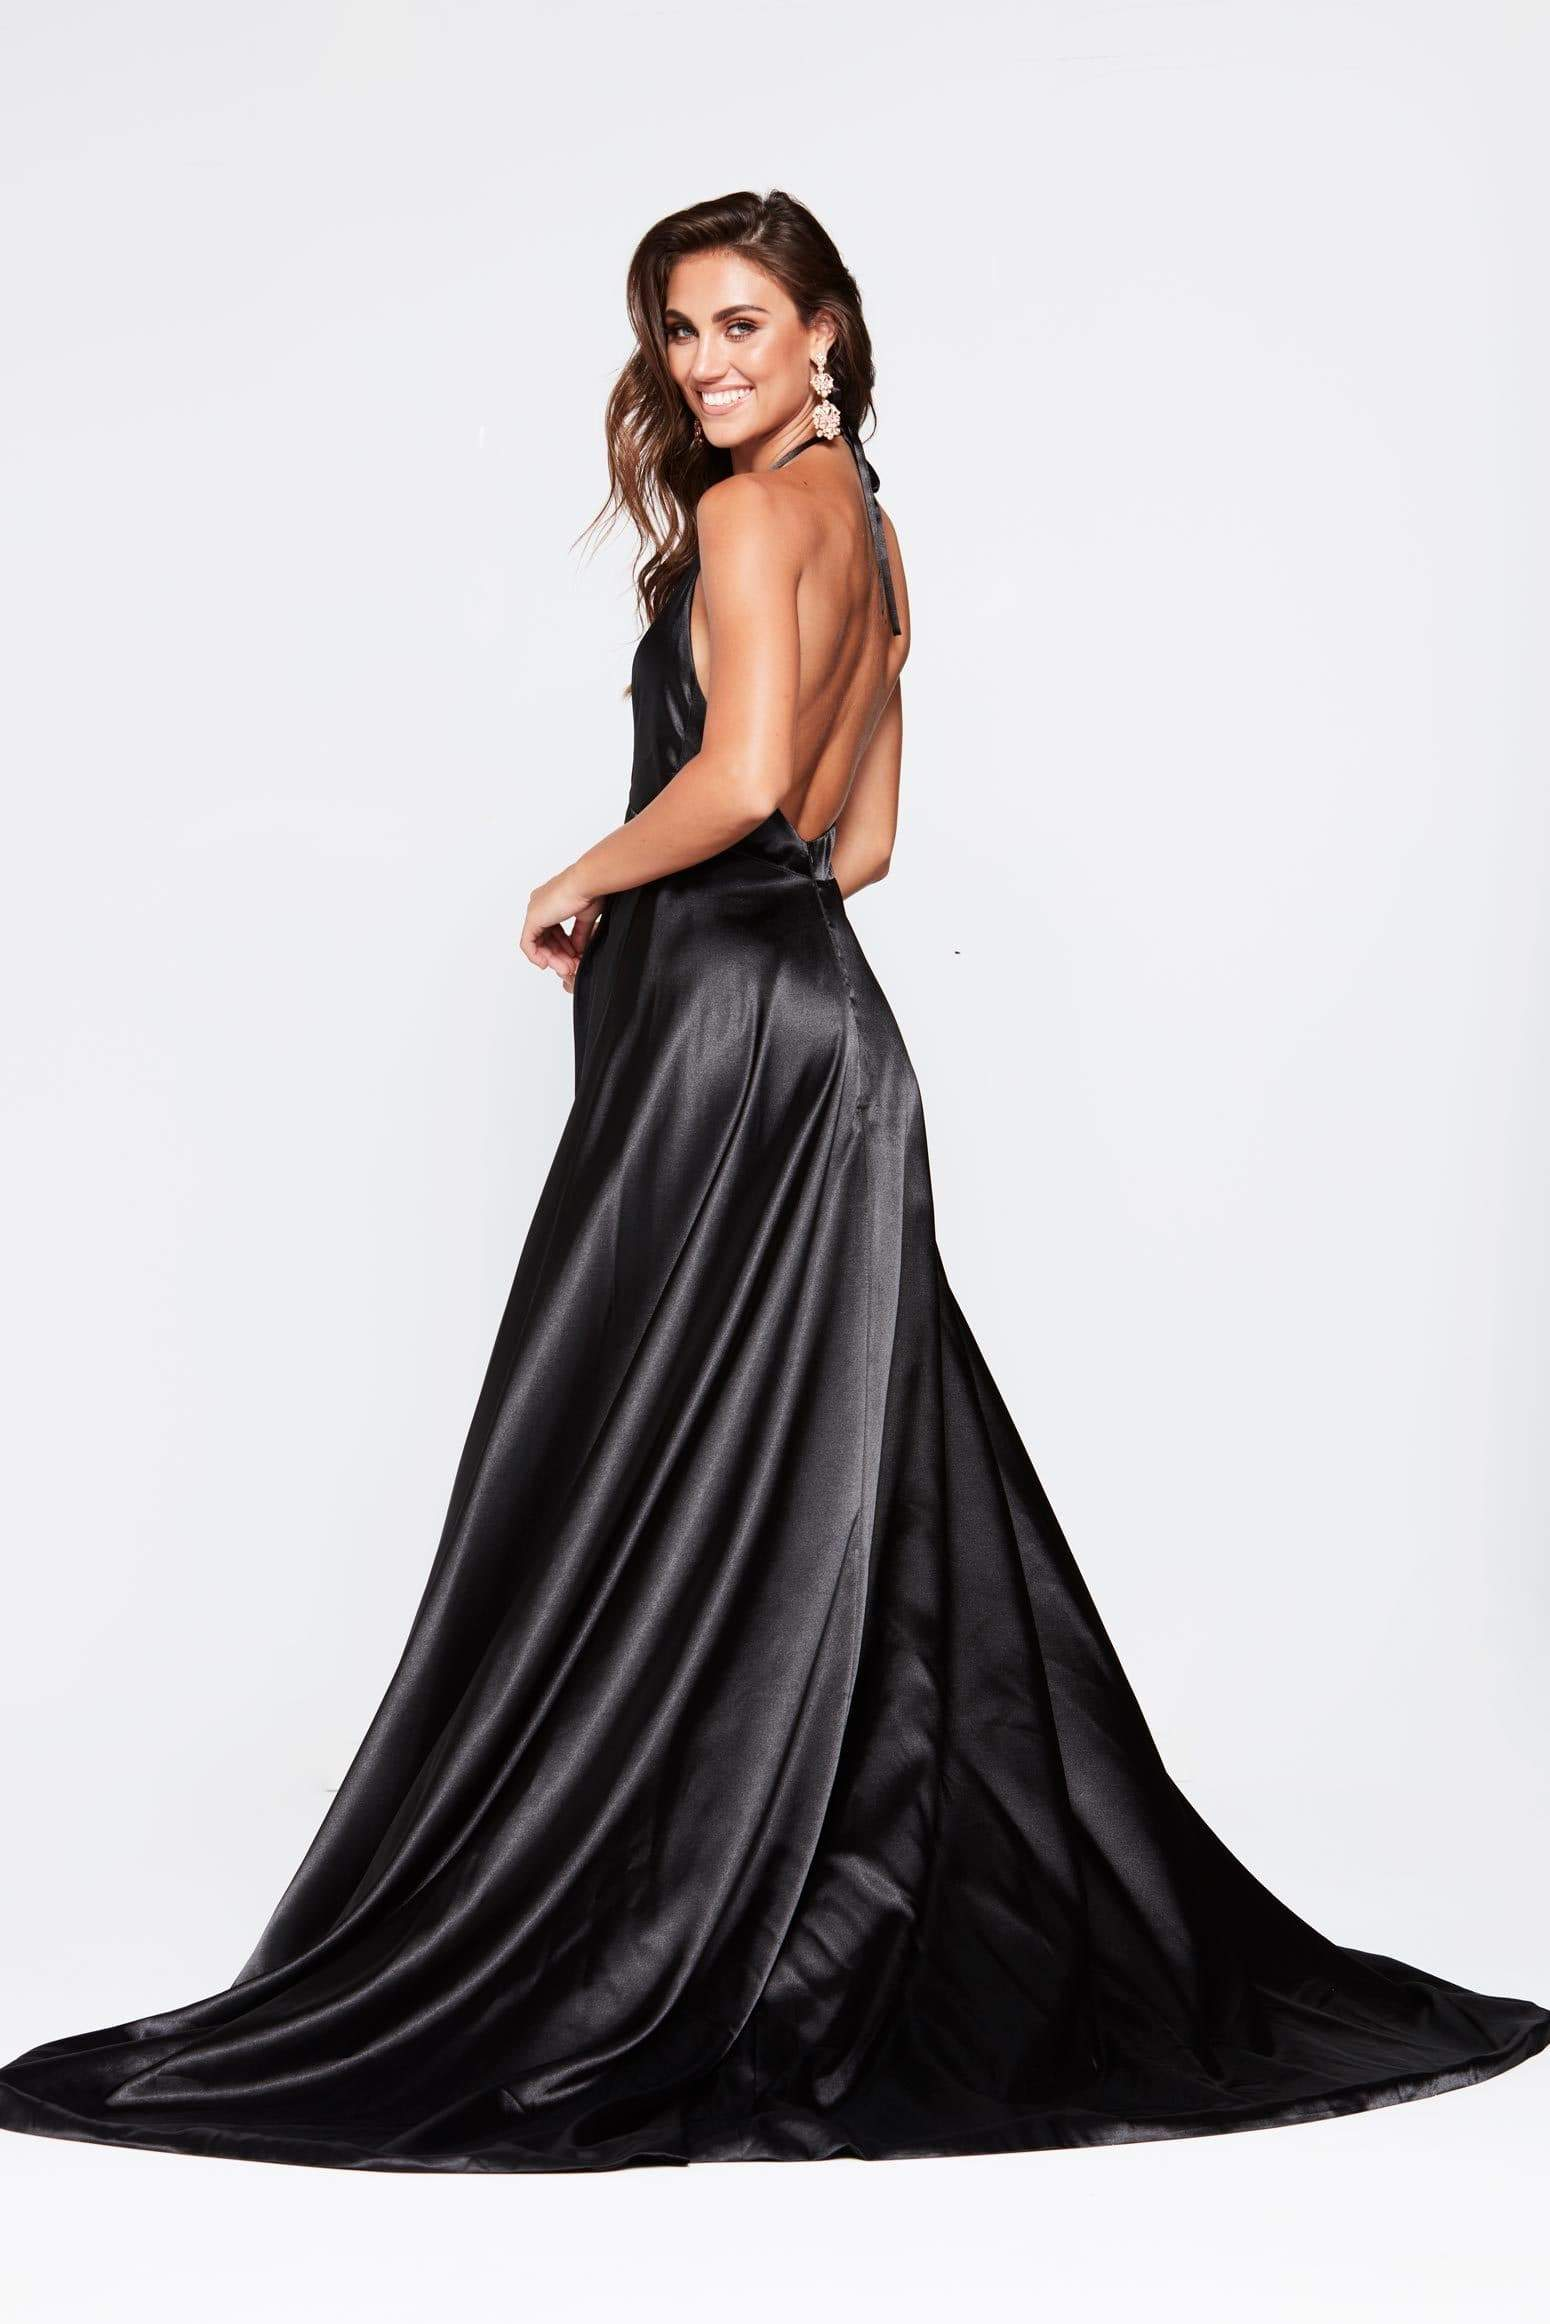 A&N Amani - Black Satin Dress with Plunge Neck and Side Split